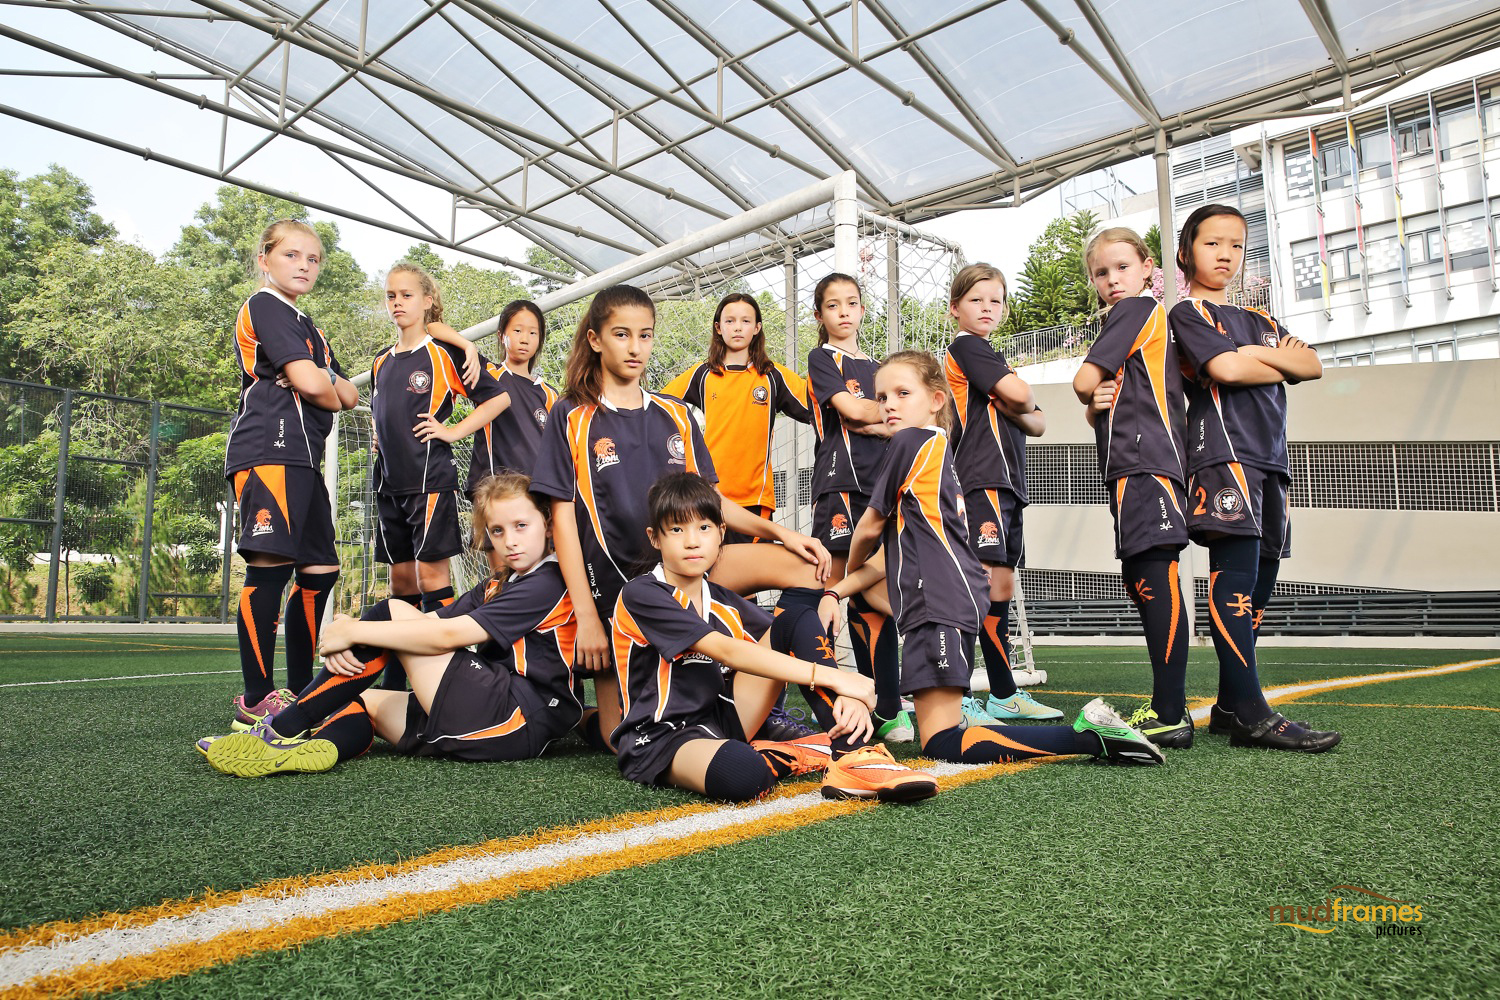 The British International School Under 11 Girls Football Team